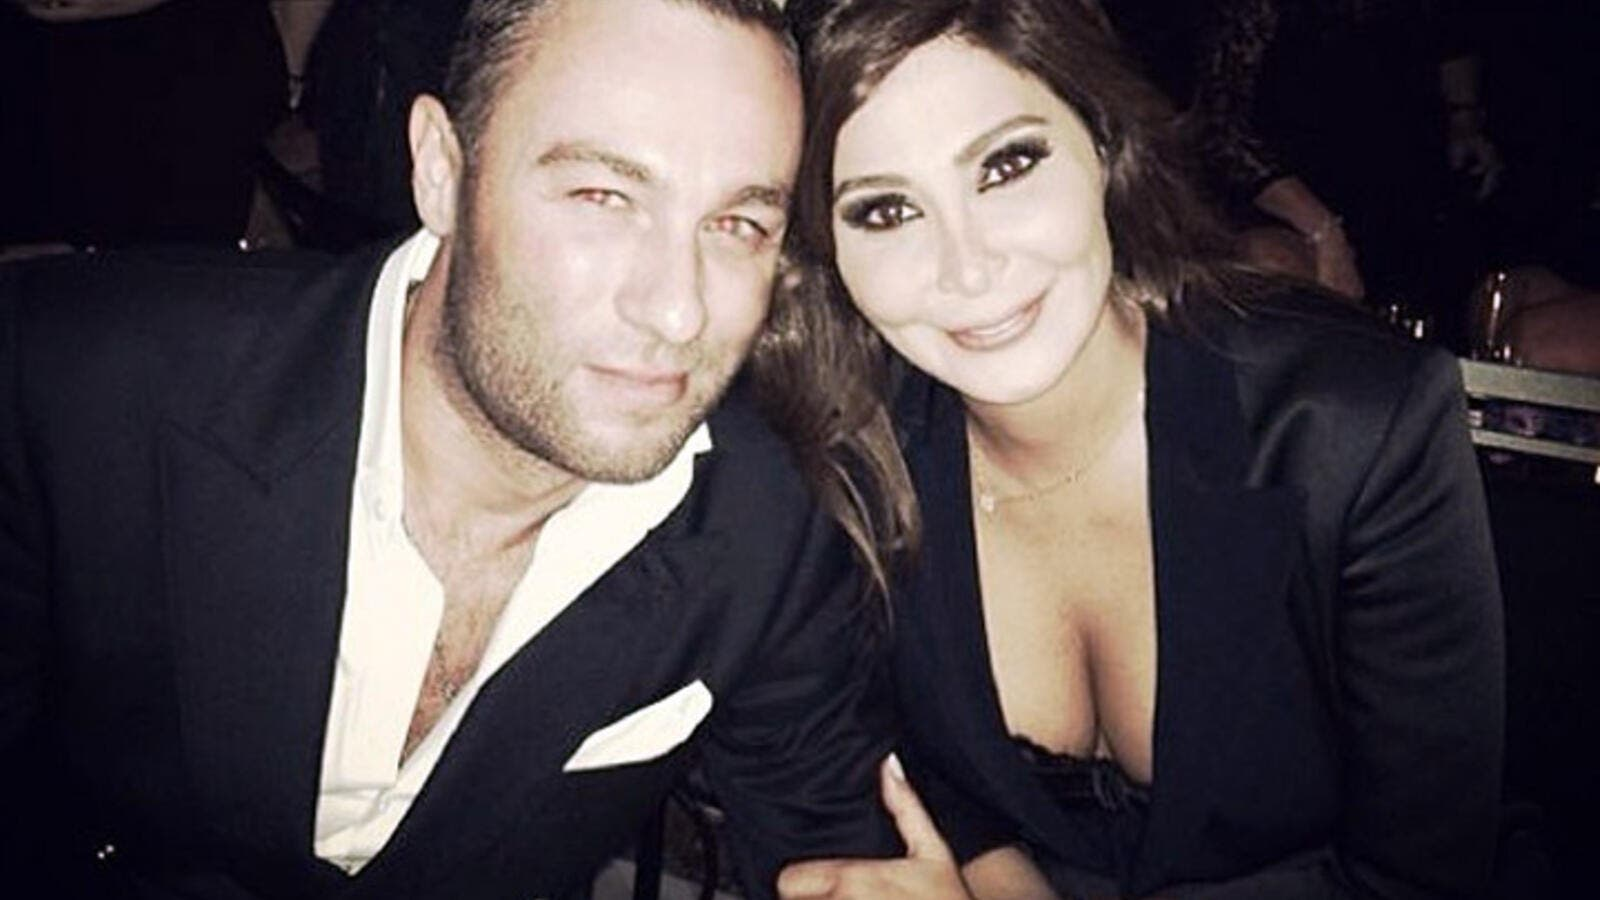 The pic Elissa posted of her and Alex Faur Znakeit on Instagram. (Image: Instagram)